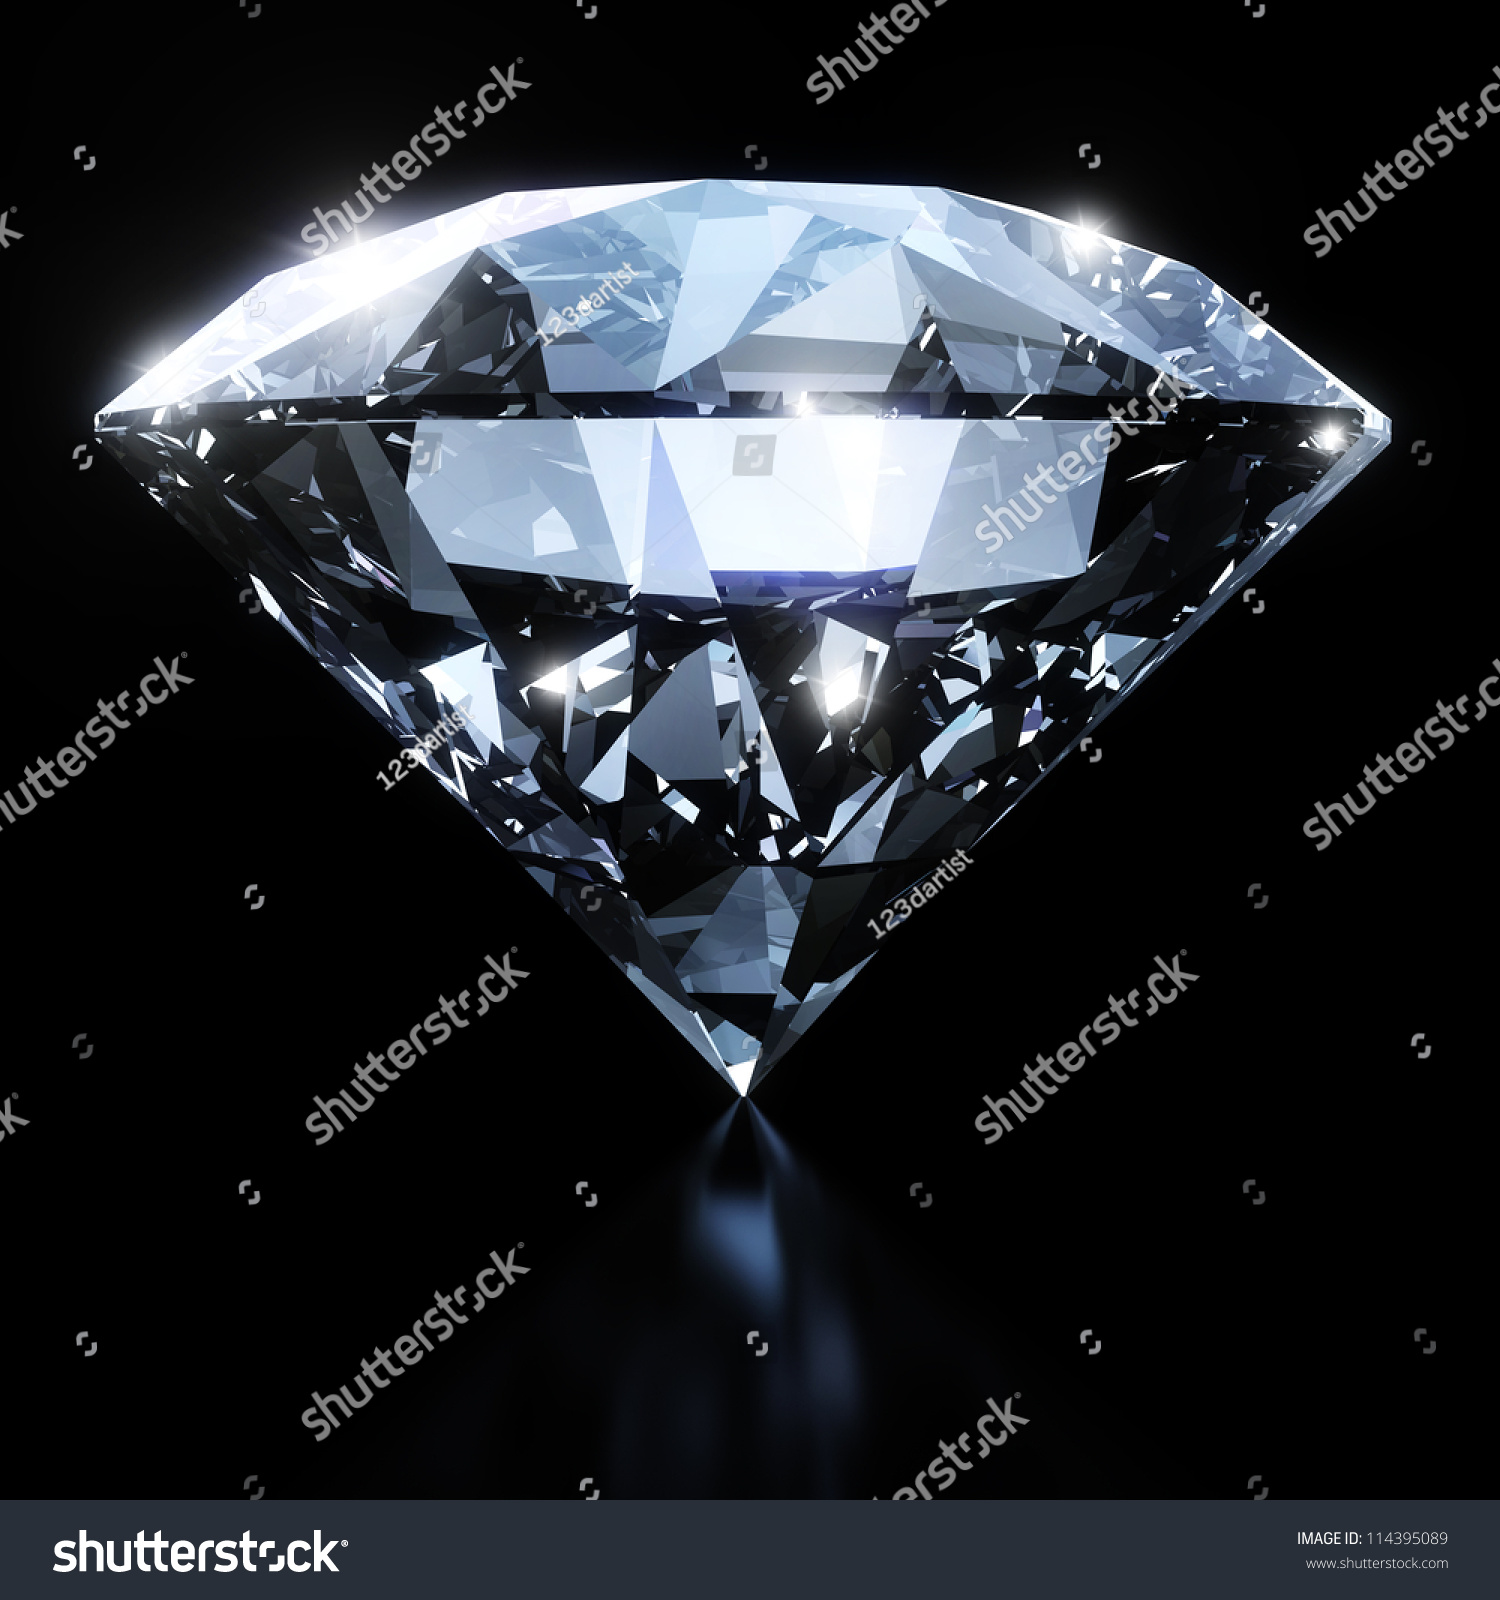 free purple background stock diamond image diamonds photos abstract royalty